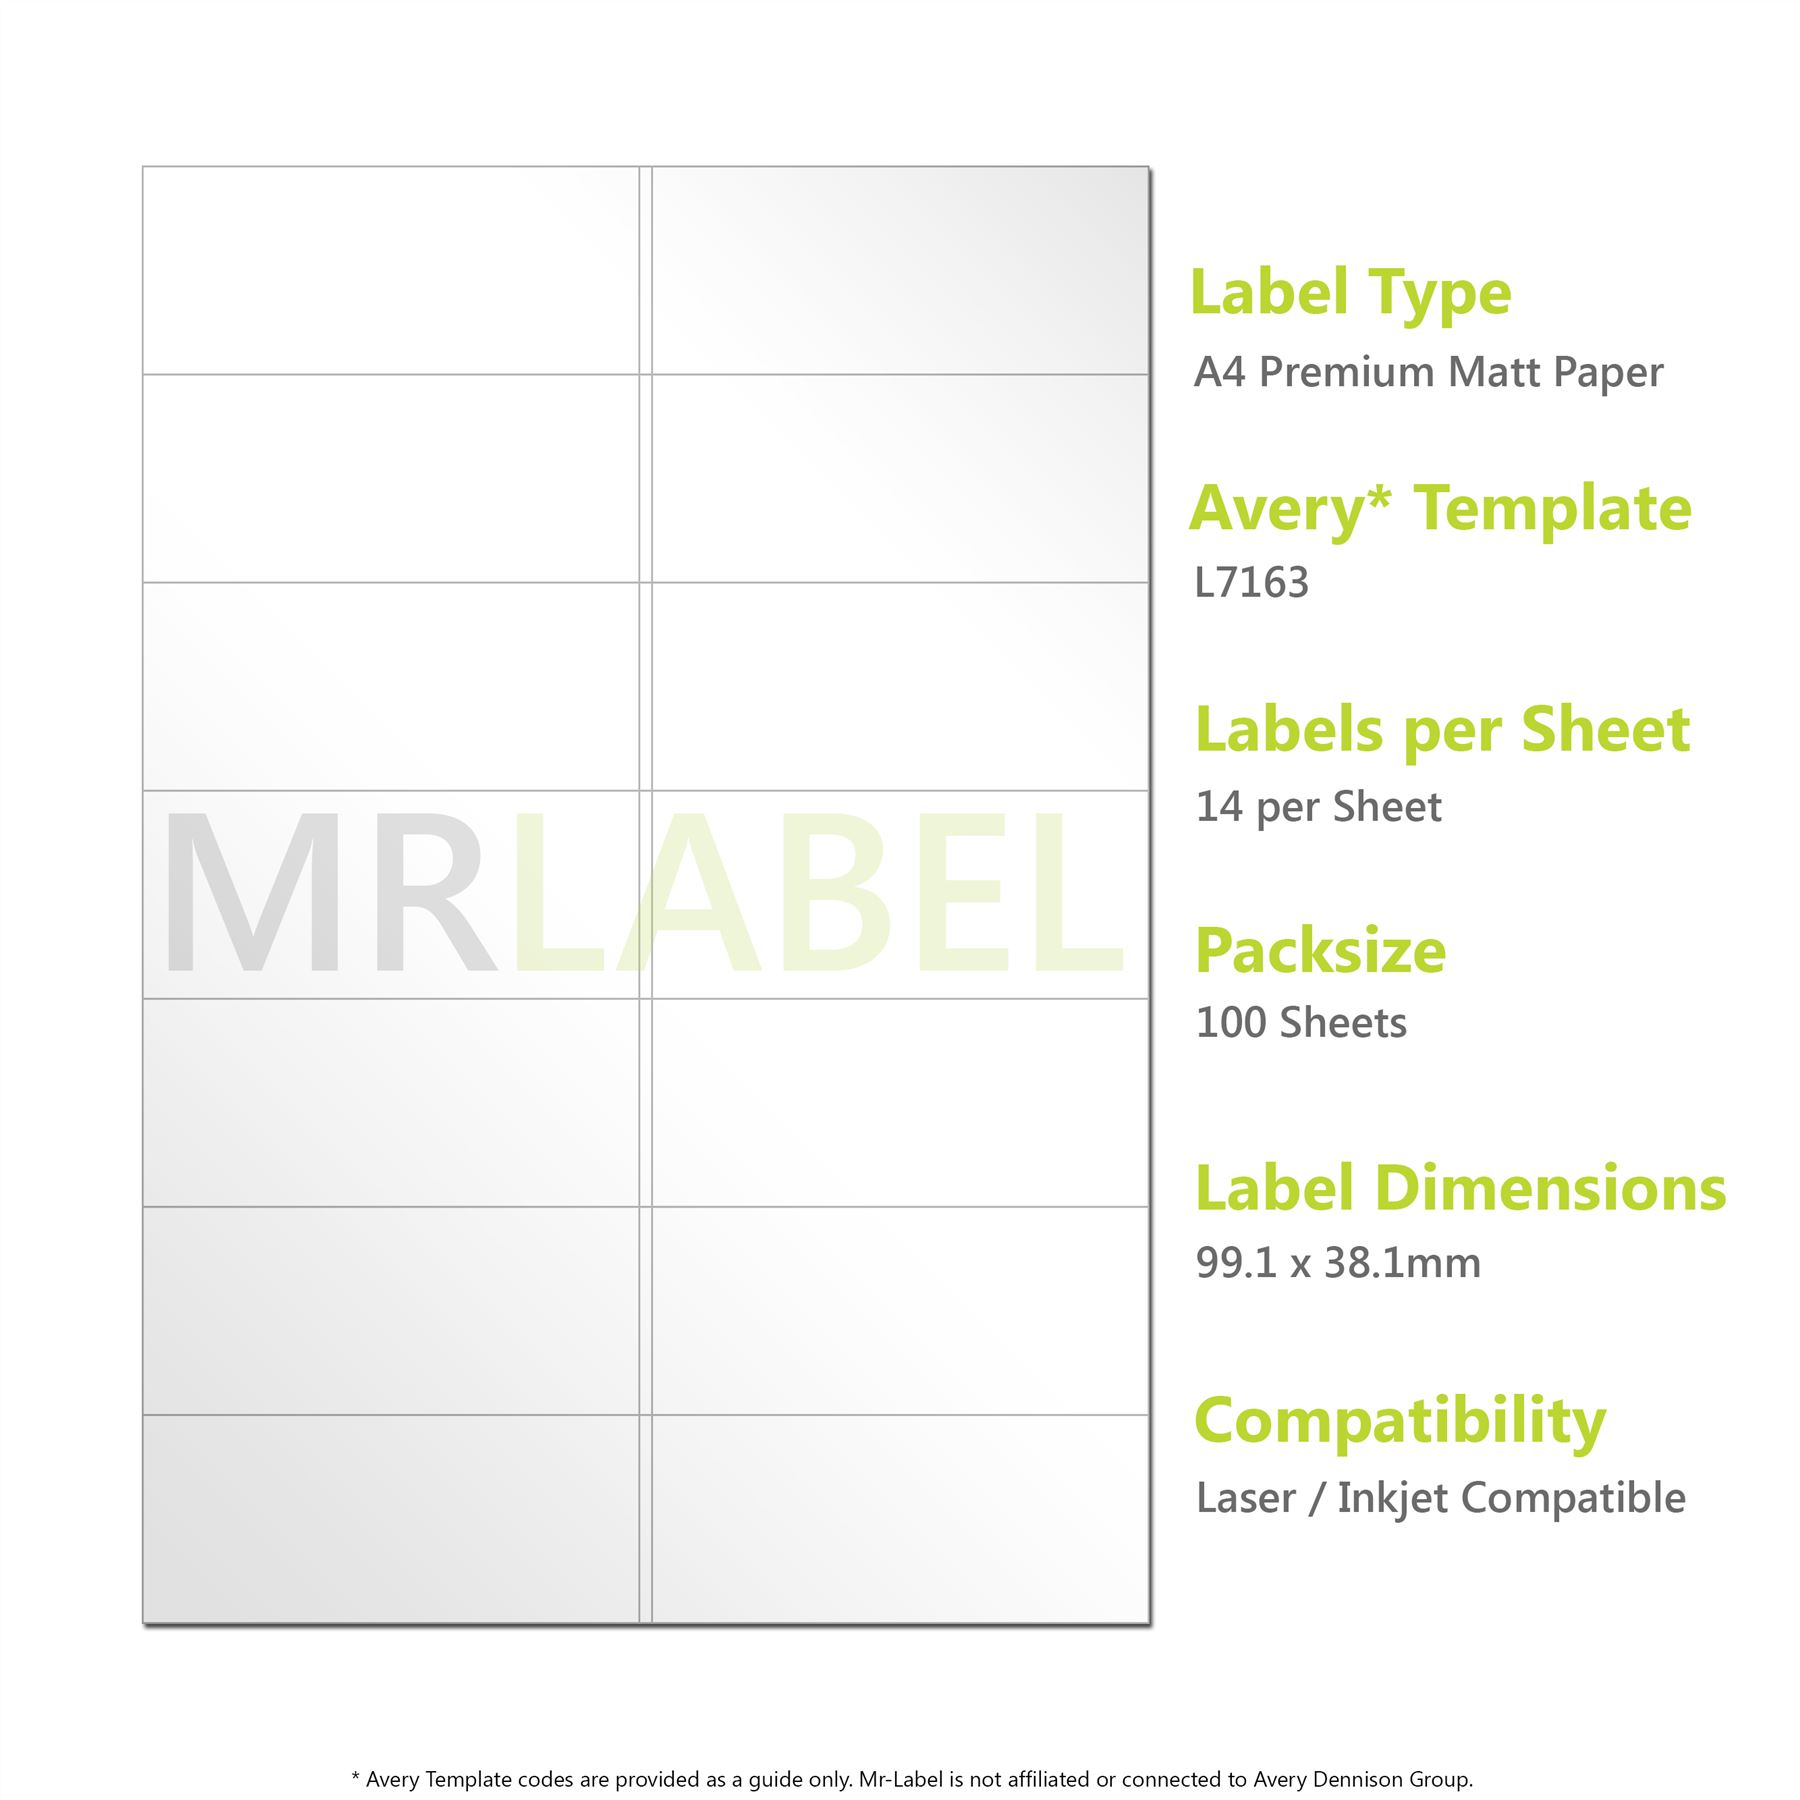 Avery compatible a4 self adhesive labels l7163 j8163 14 for Avery 14 labels per sheet template